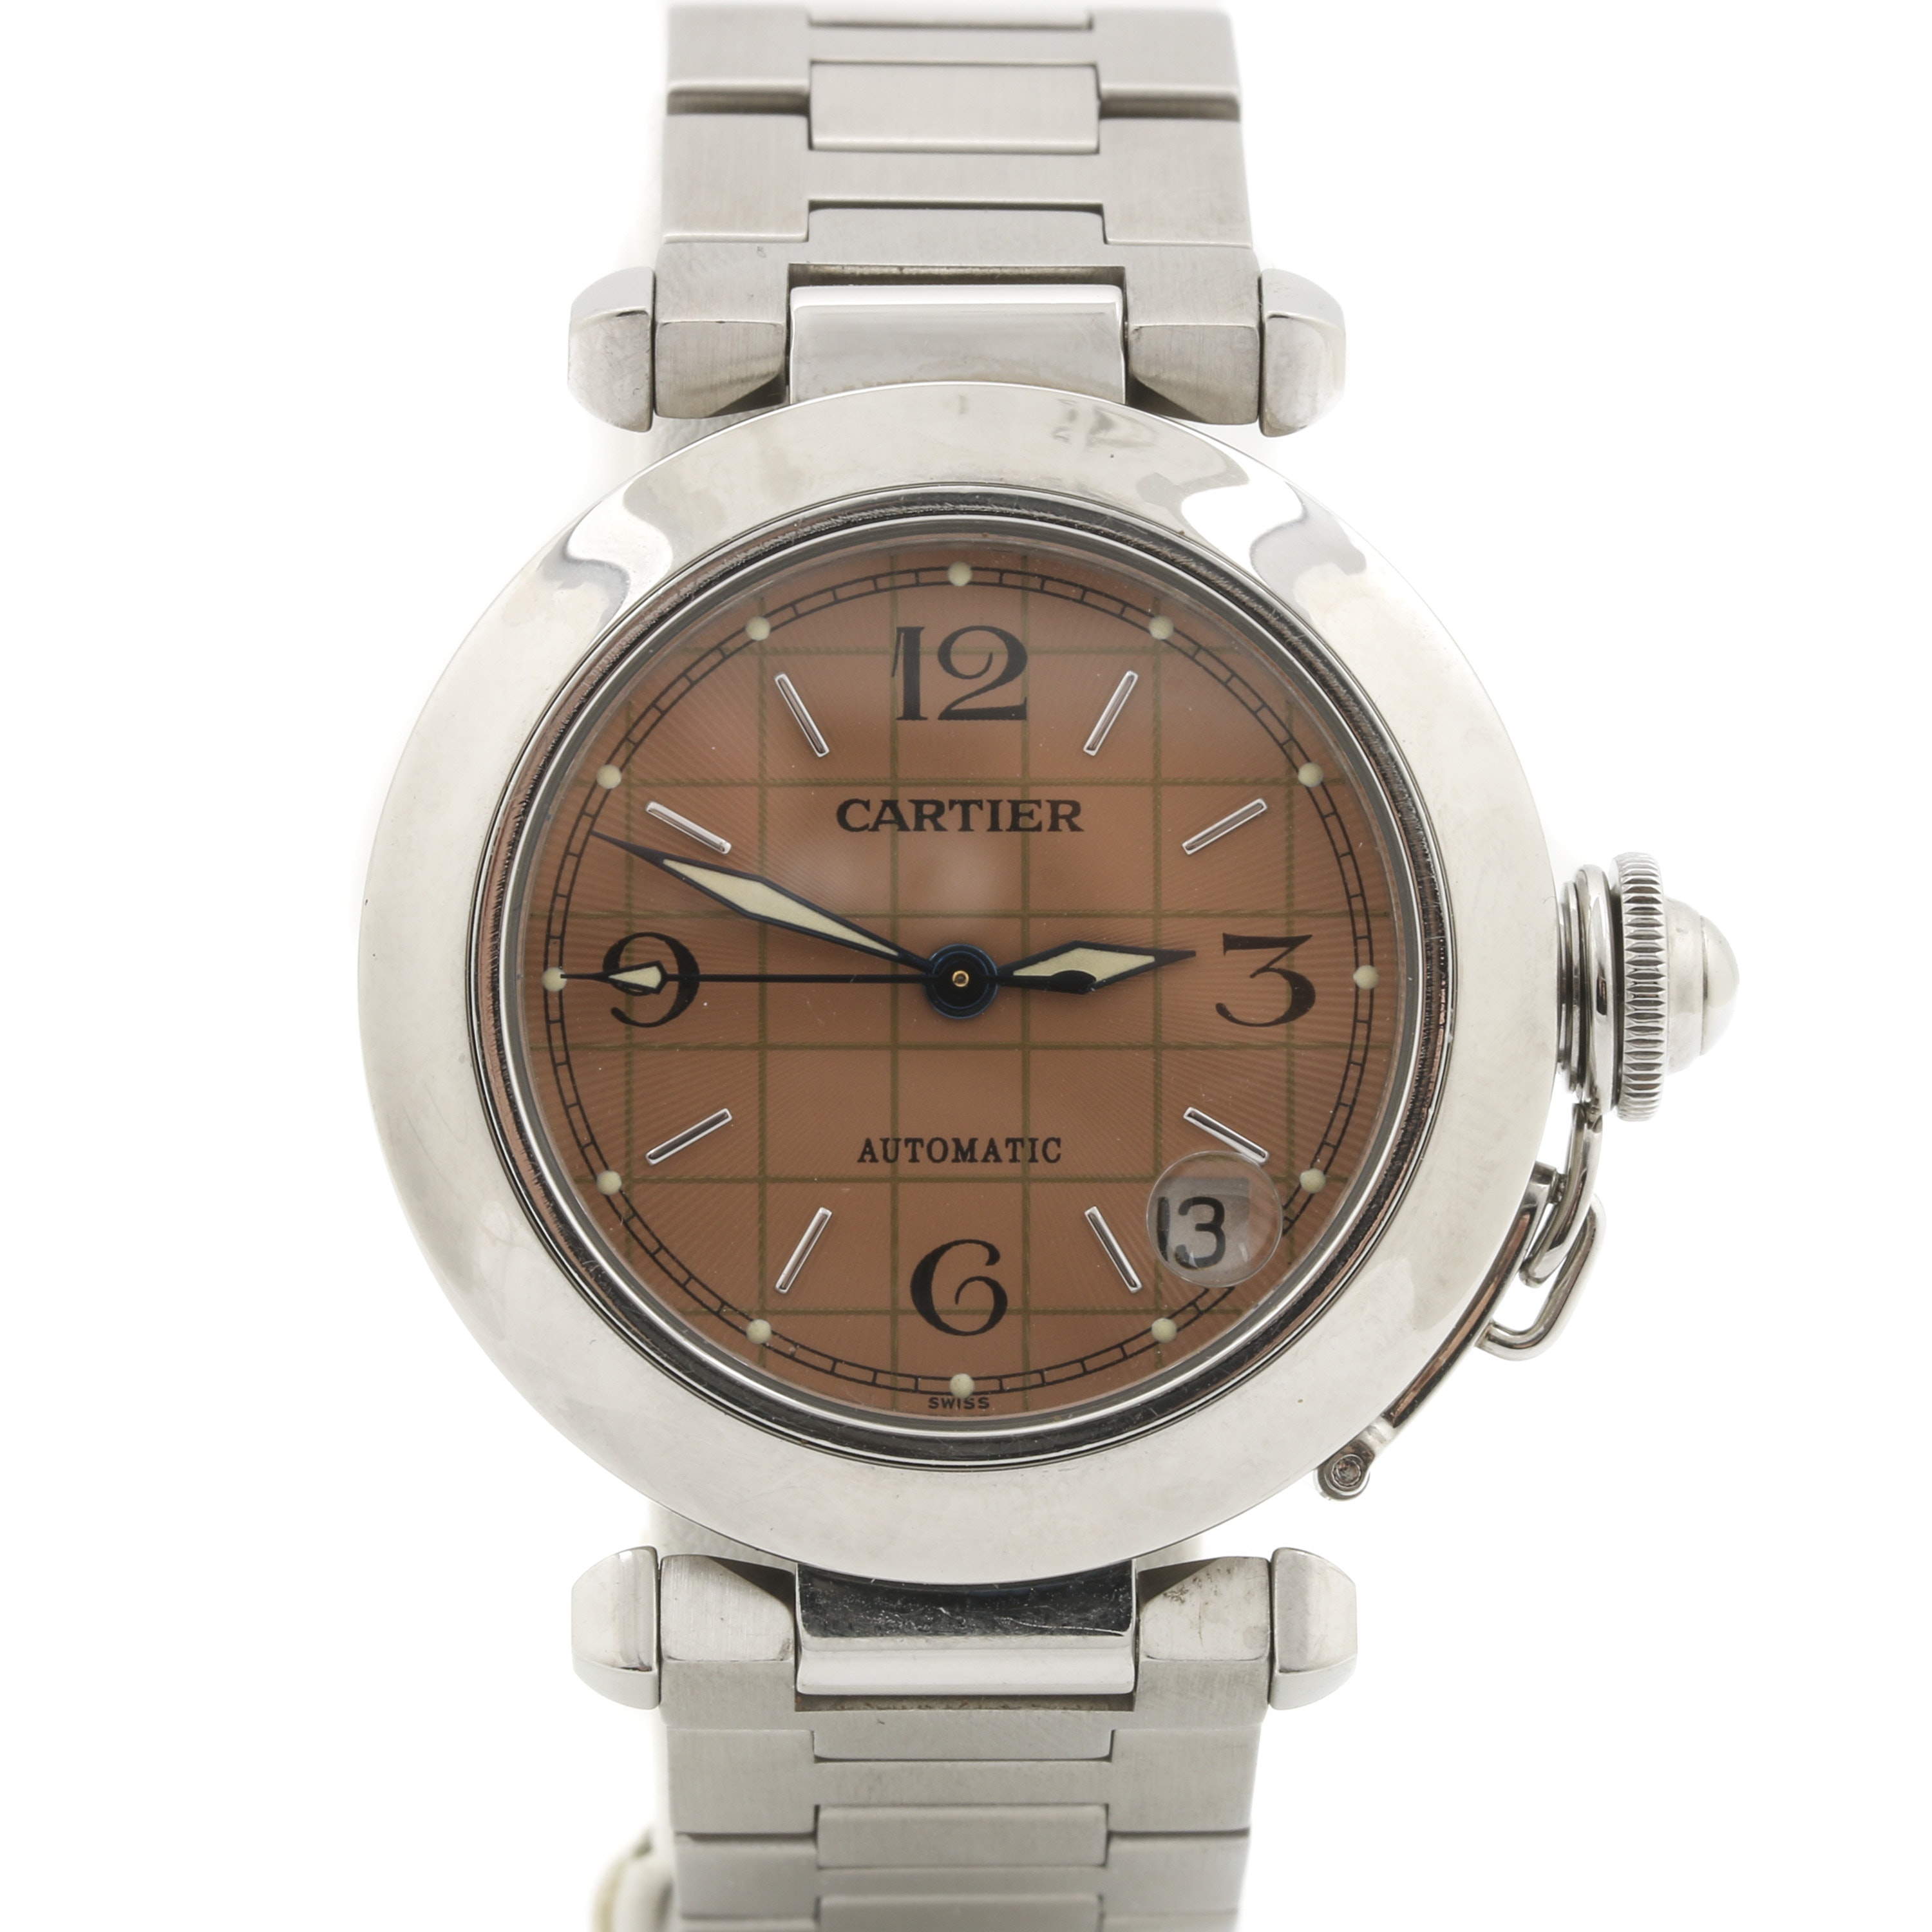 Cartier Pasha Automatic Stainless Steel Wristwatch